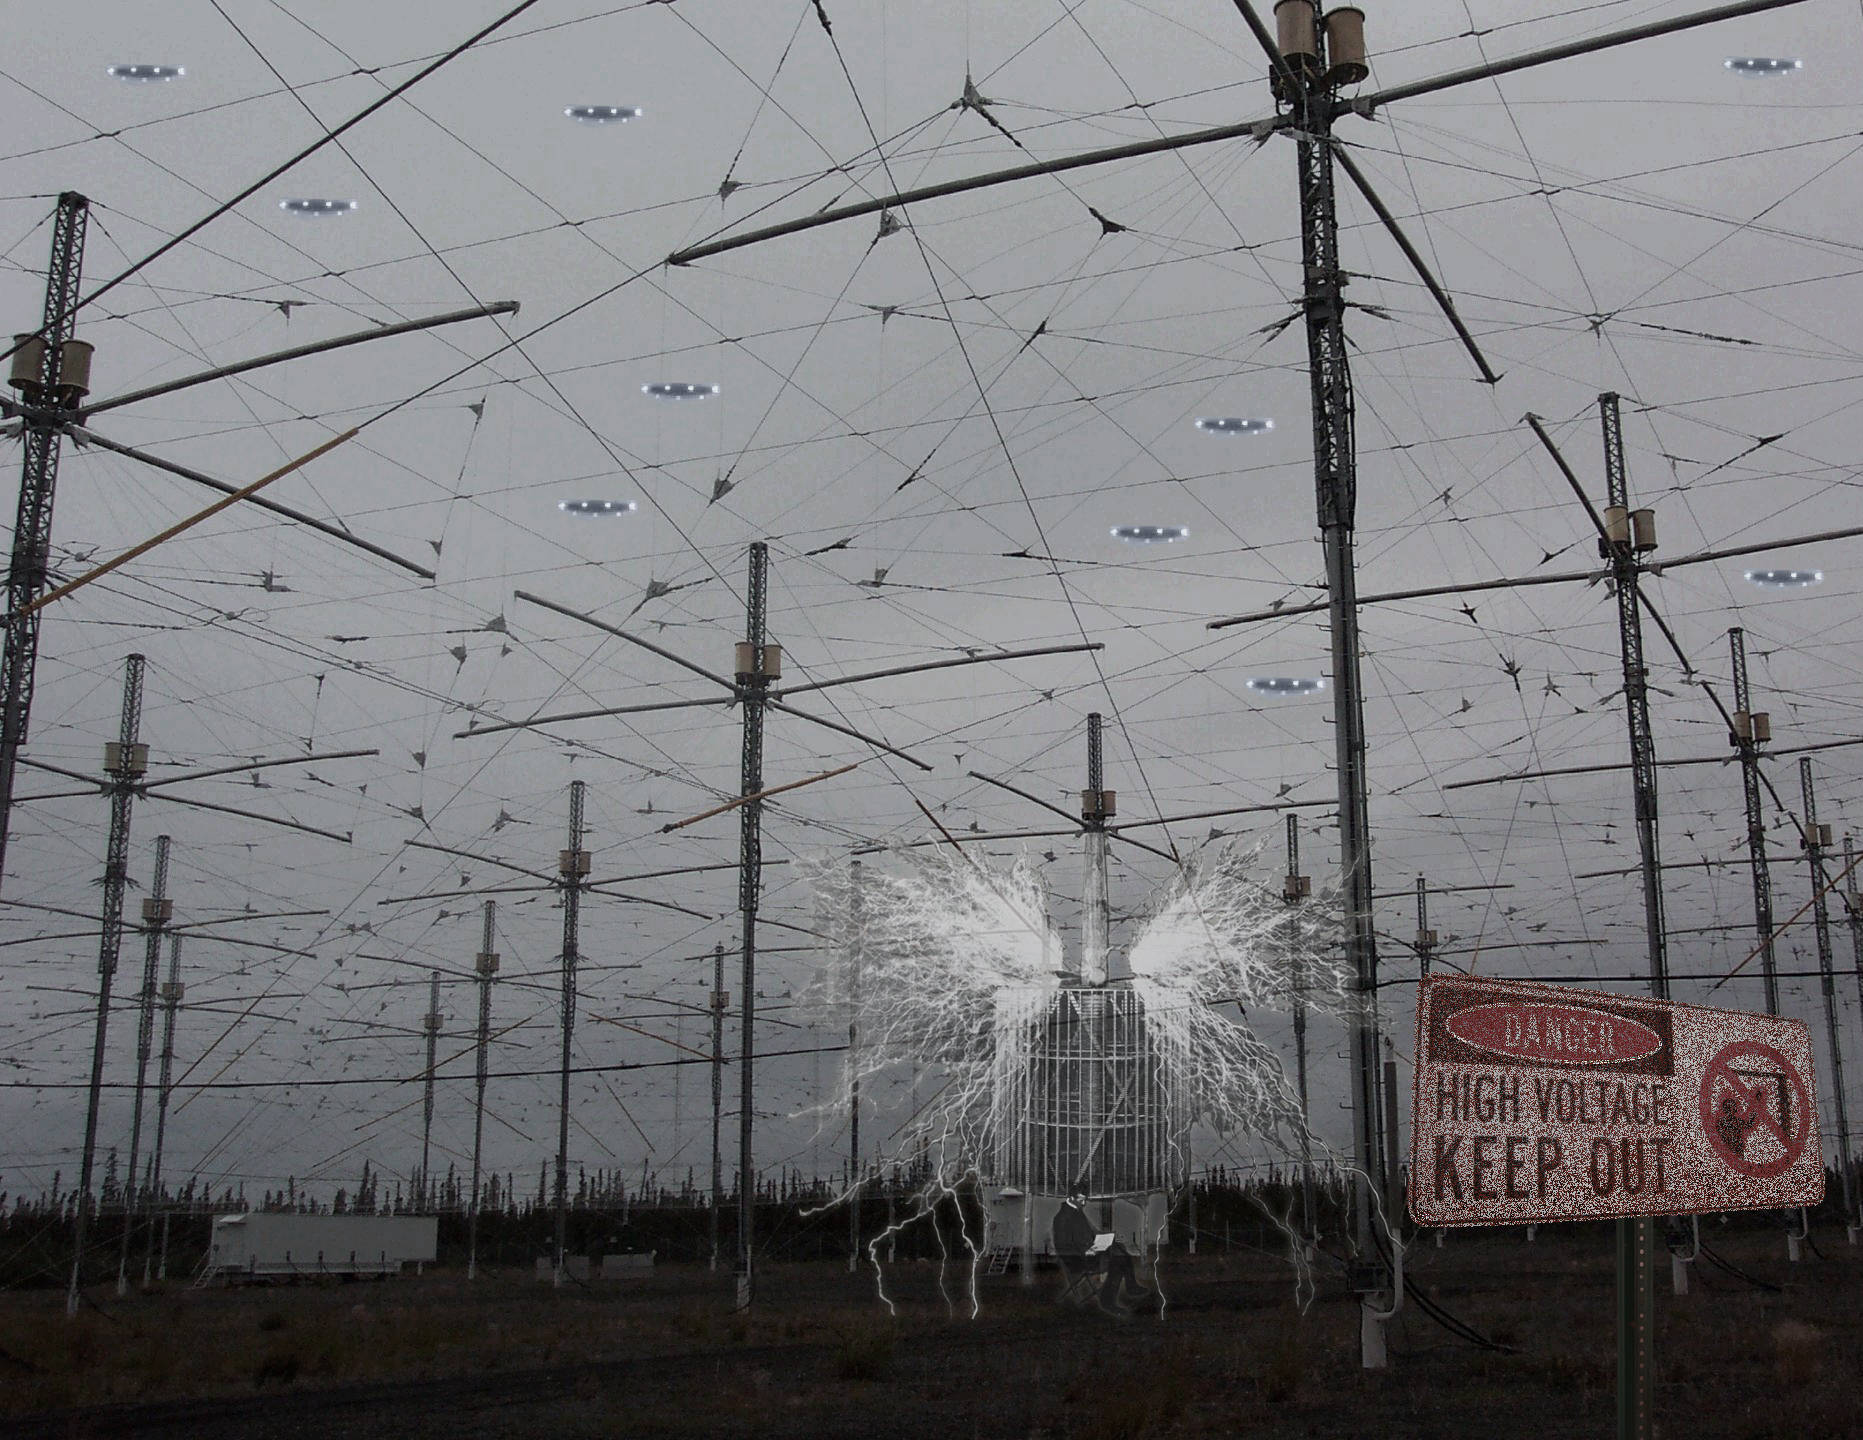 high frequency active auroral research program essay The north american haarp (high frequency active auroral research program) has been since 1999 conducting research into the ionosphere in gakona, alaska.